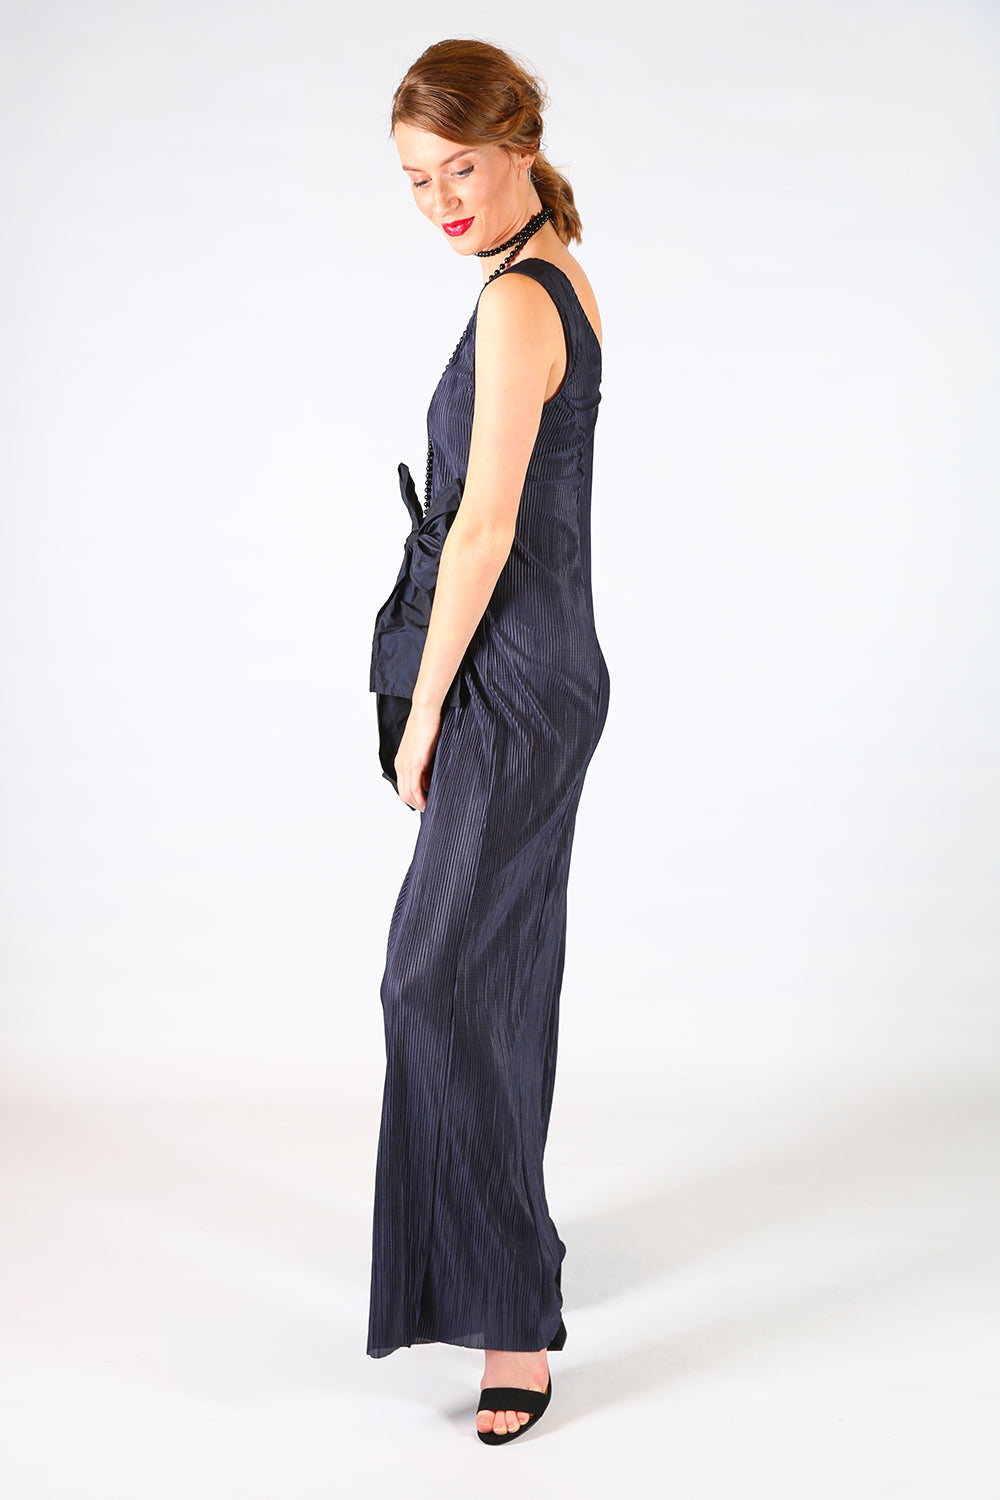 Andie Lee Pleated Jumpsuit, Annah Stretton AW19, Navy Pleated Jumpsuit, Shot on Model